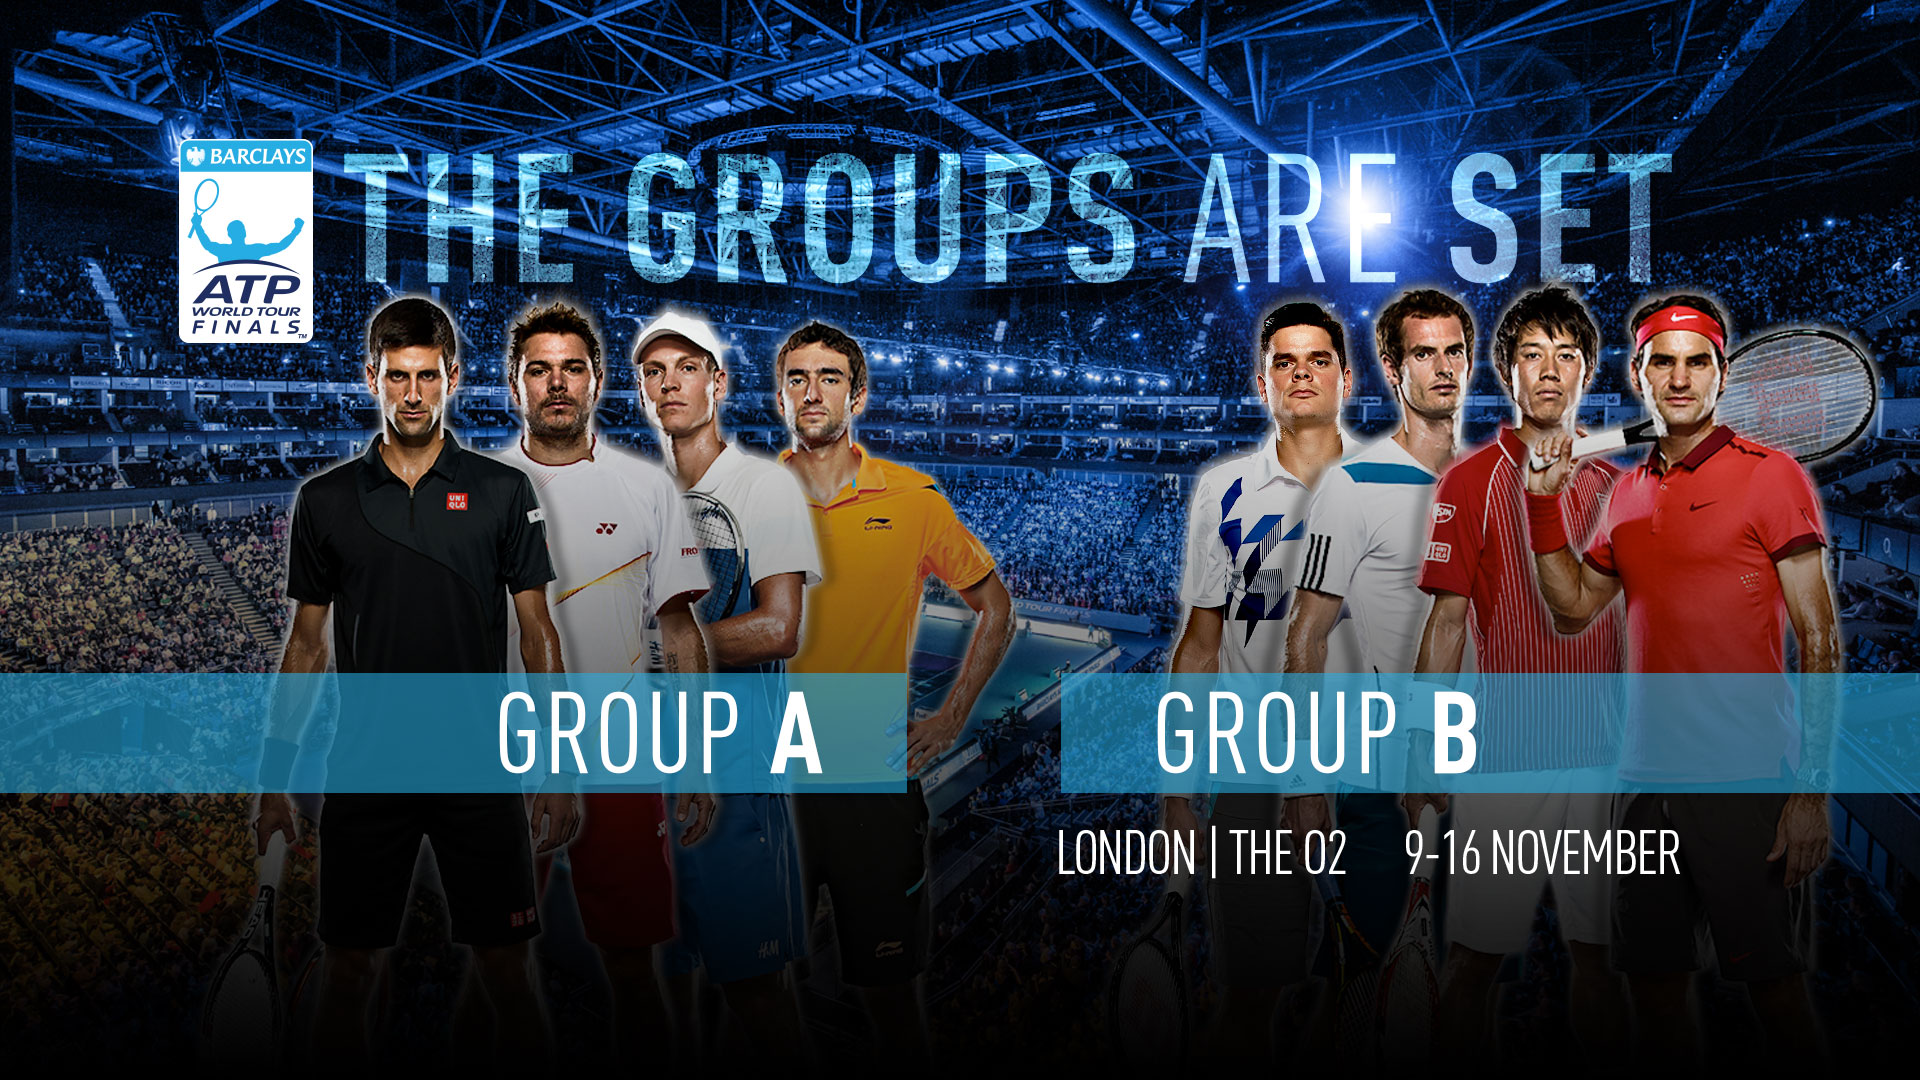 Barclays Atp World Tour Finals Preview And Predictions